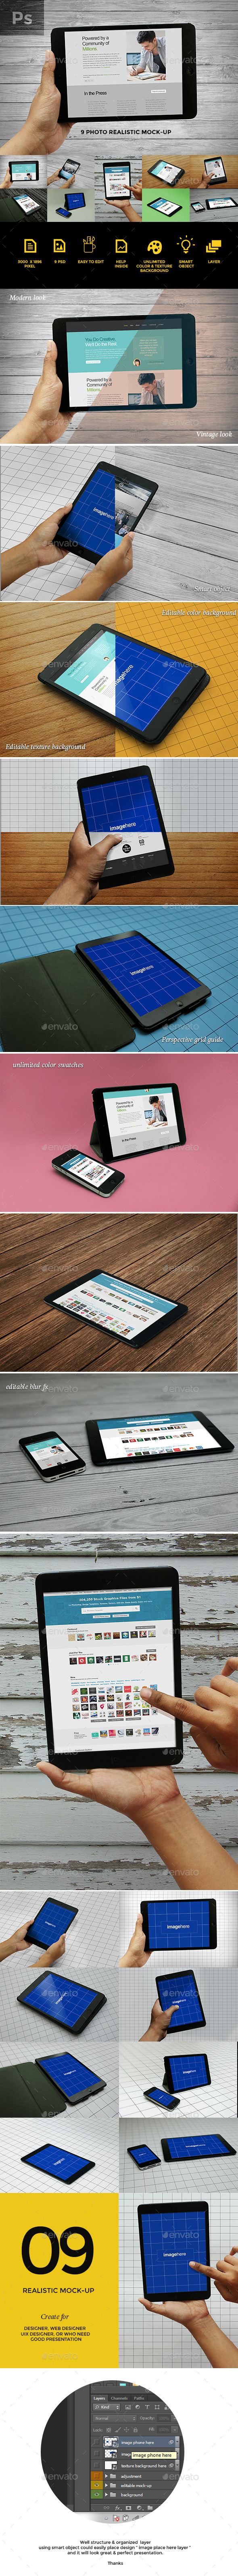 9 Photo Realistic Tablet Phone Mockups  - Displays Product Mock-Ups